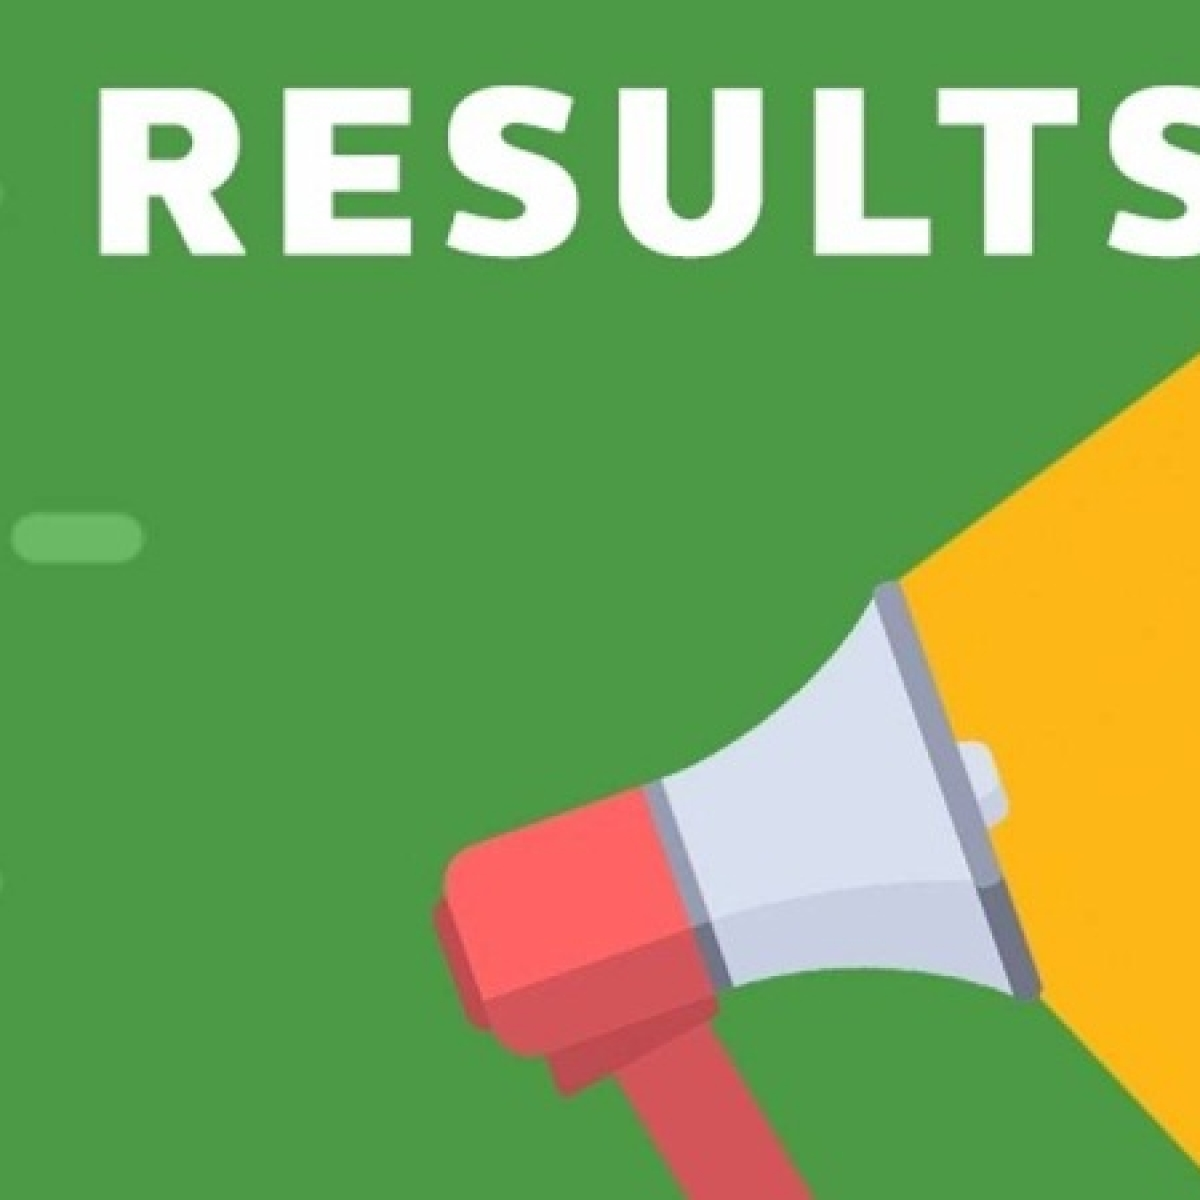 JNUEE2019: JNU declares entrance exam results for MPhil, PhD admission; check at admissions.jnu.ac.in